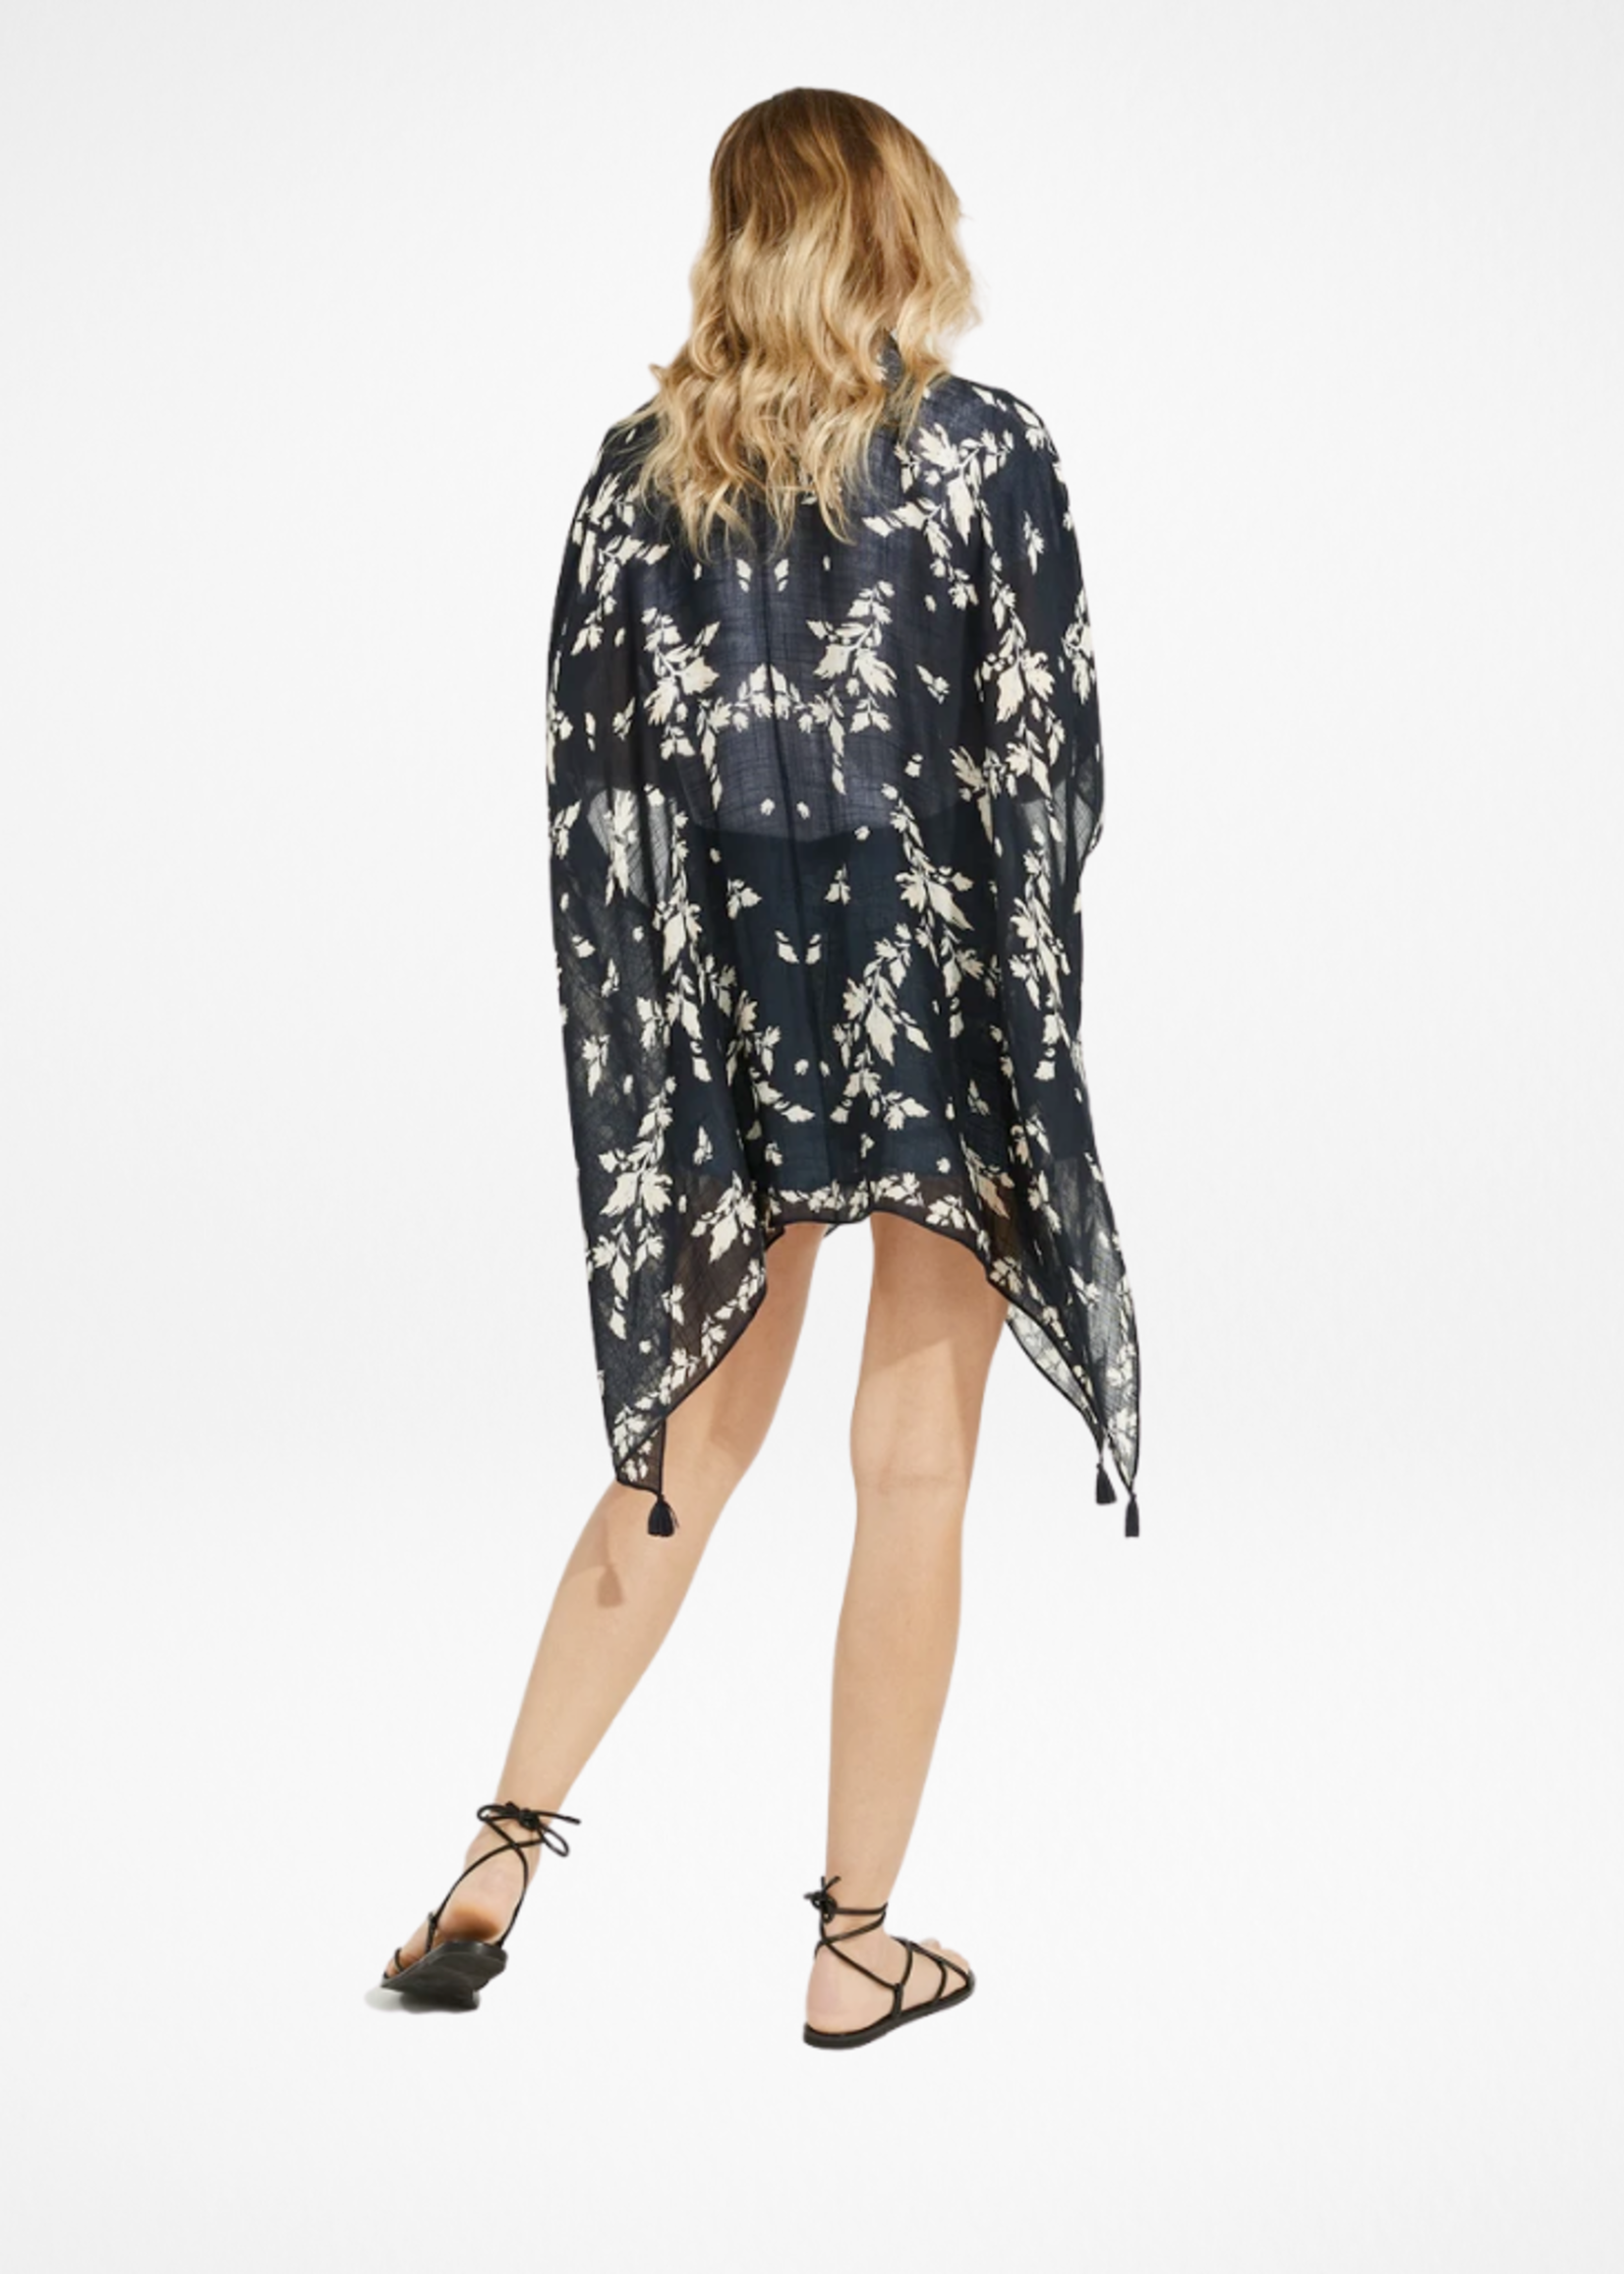 GENTLE FAWN 21 GF 4 LEDGER COVER-UP